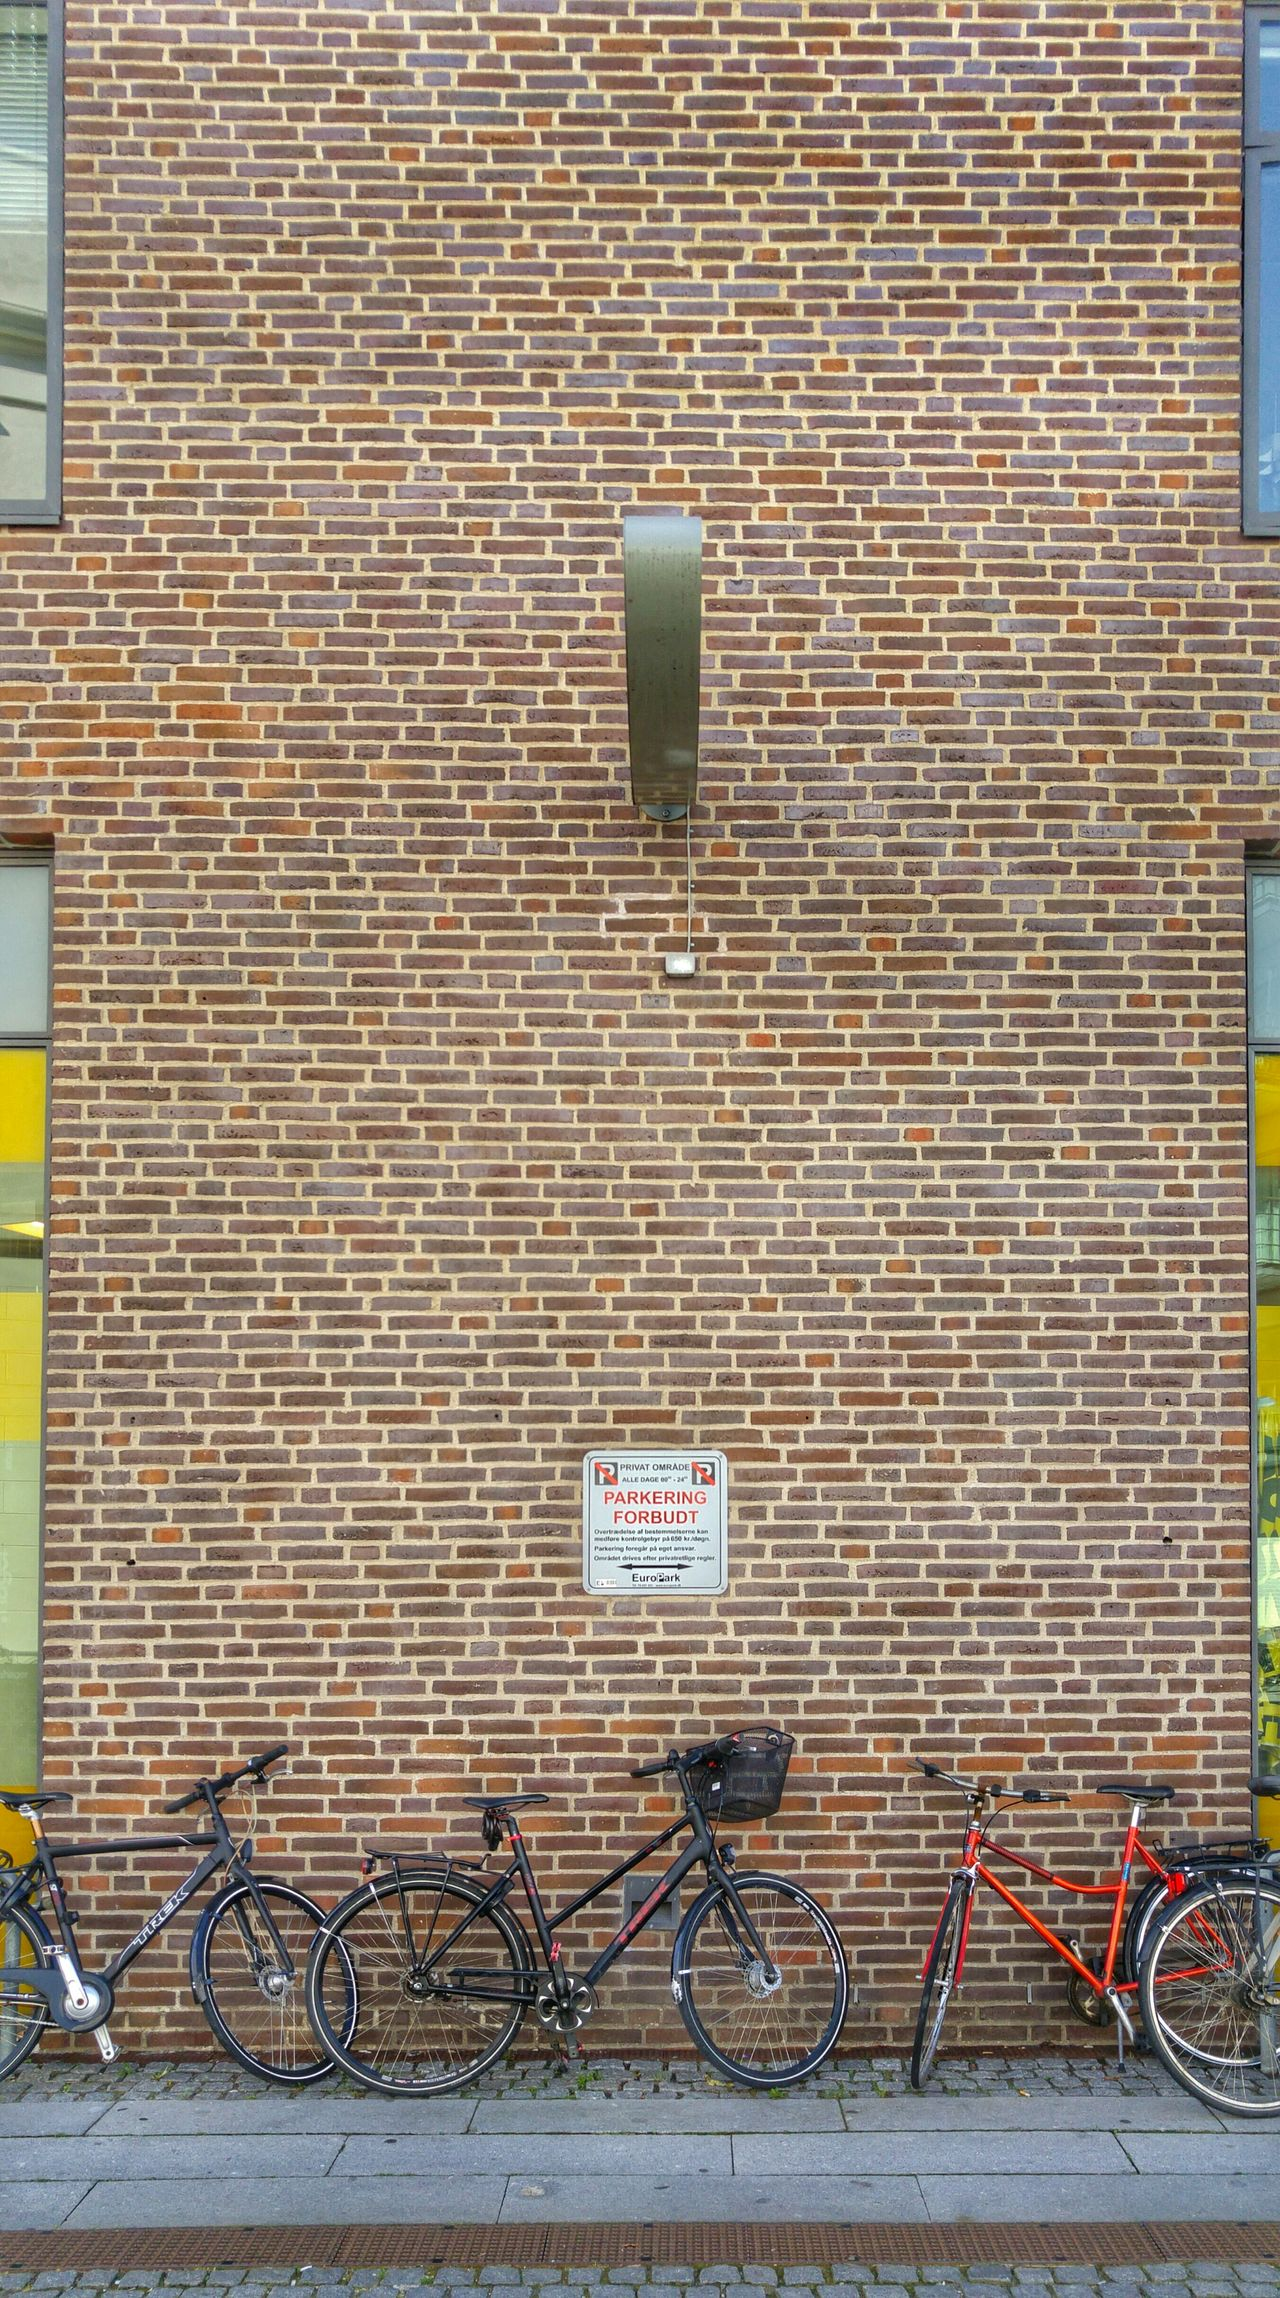 Copenhagen Kopenhavn Denmark Danmark Wall Bricks Bicycles Forbidden Forbidden Places Taking Photos